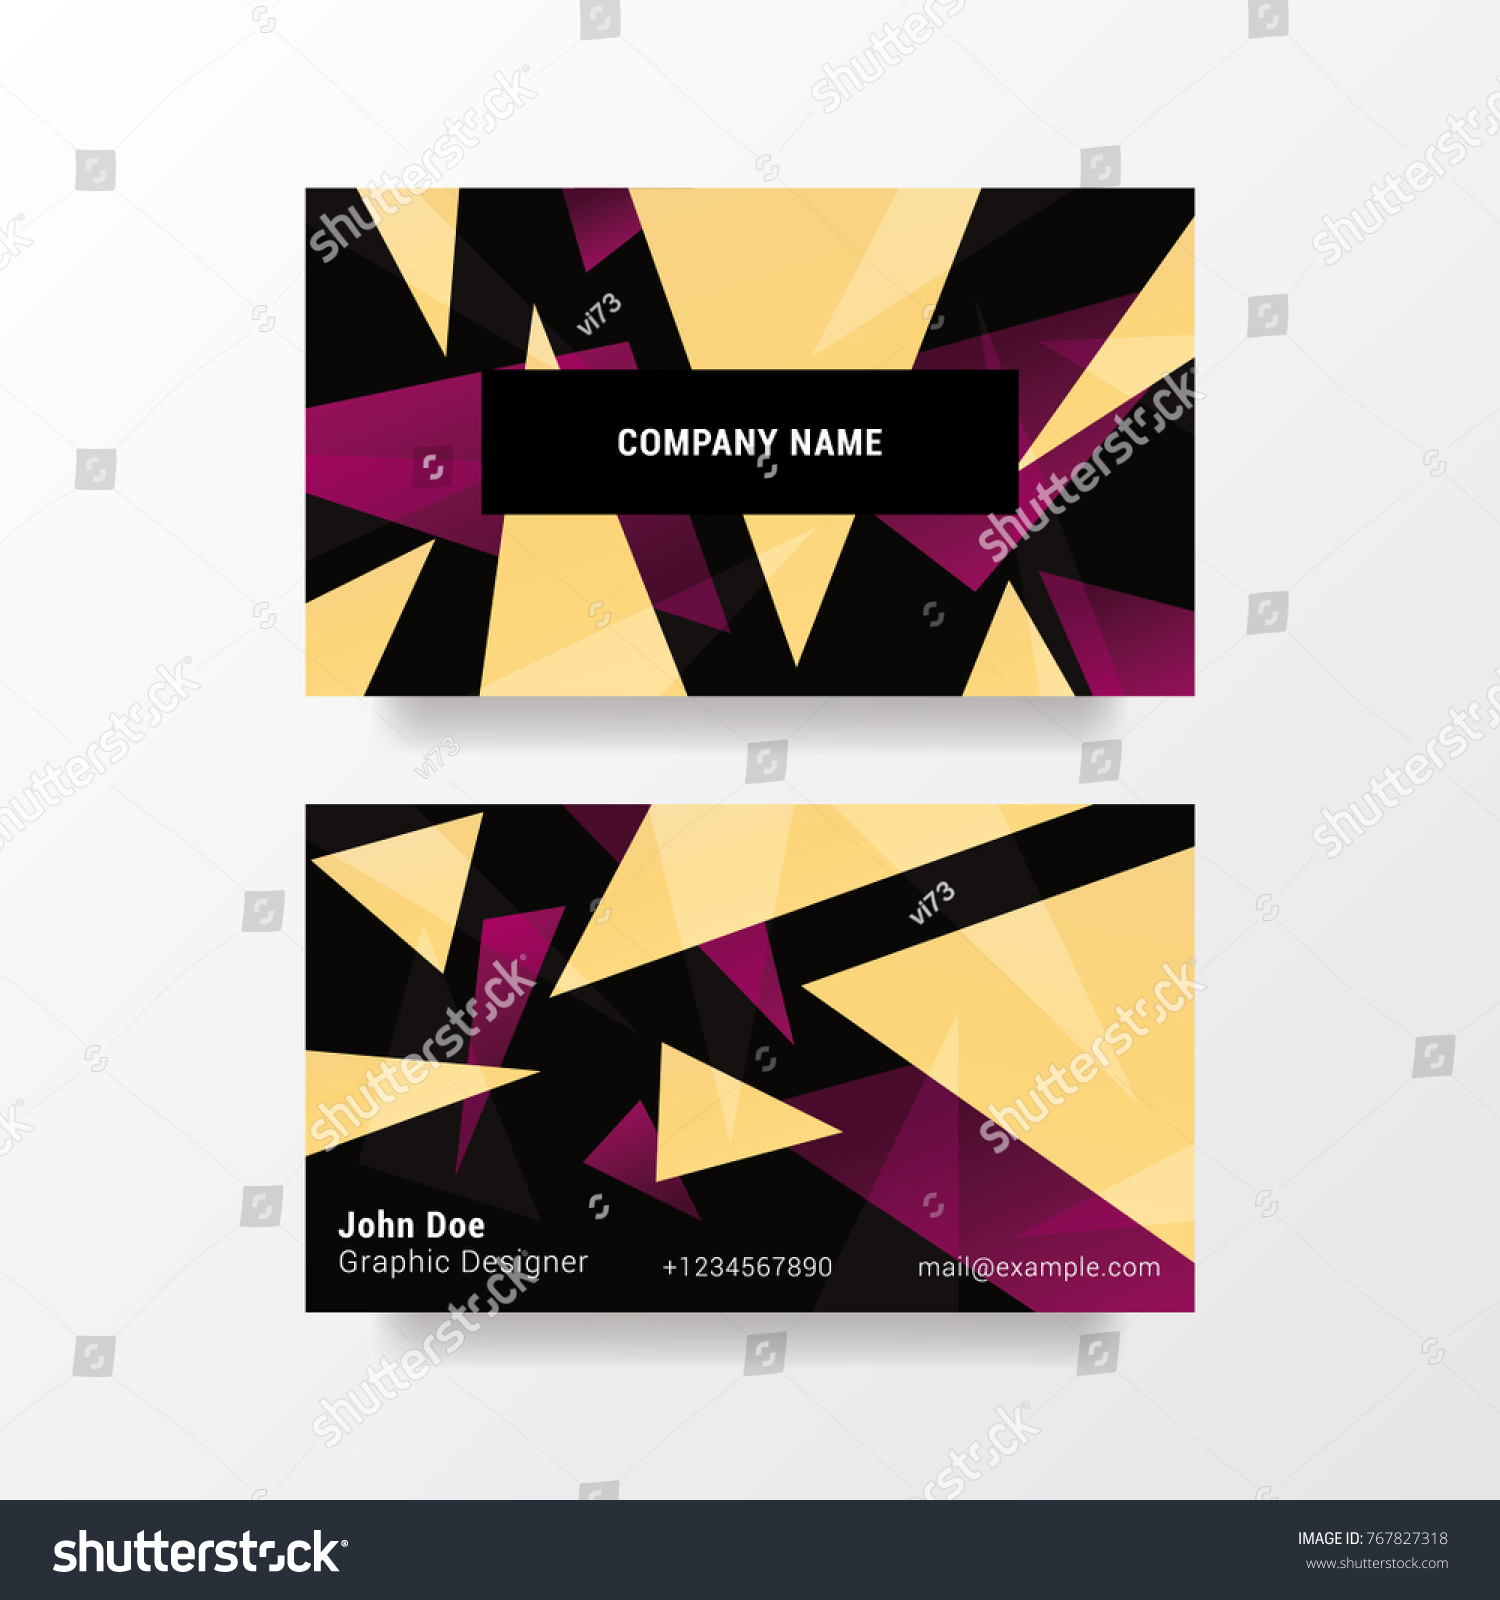 Modern Business Card Template X Abstract Stock Vector - 35 x2 business card template